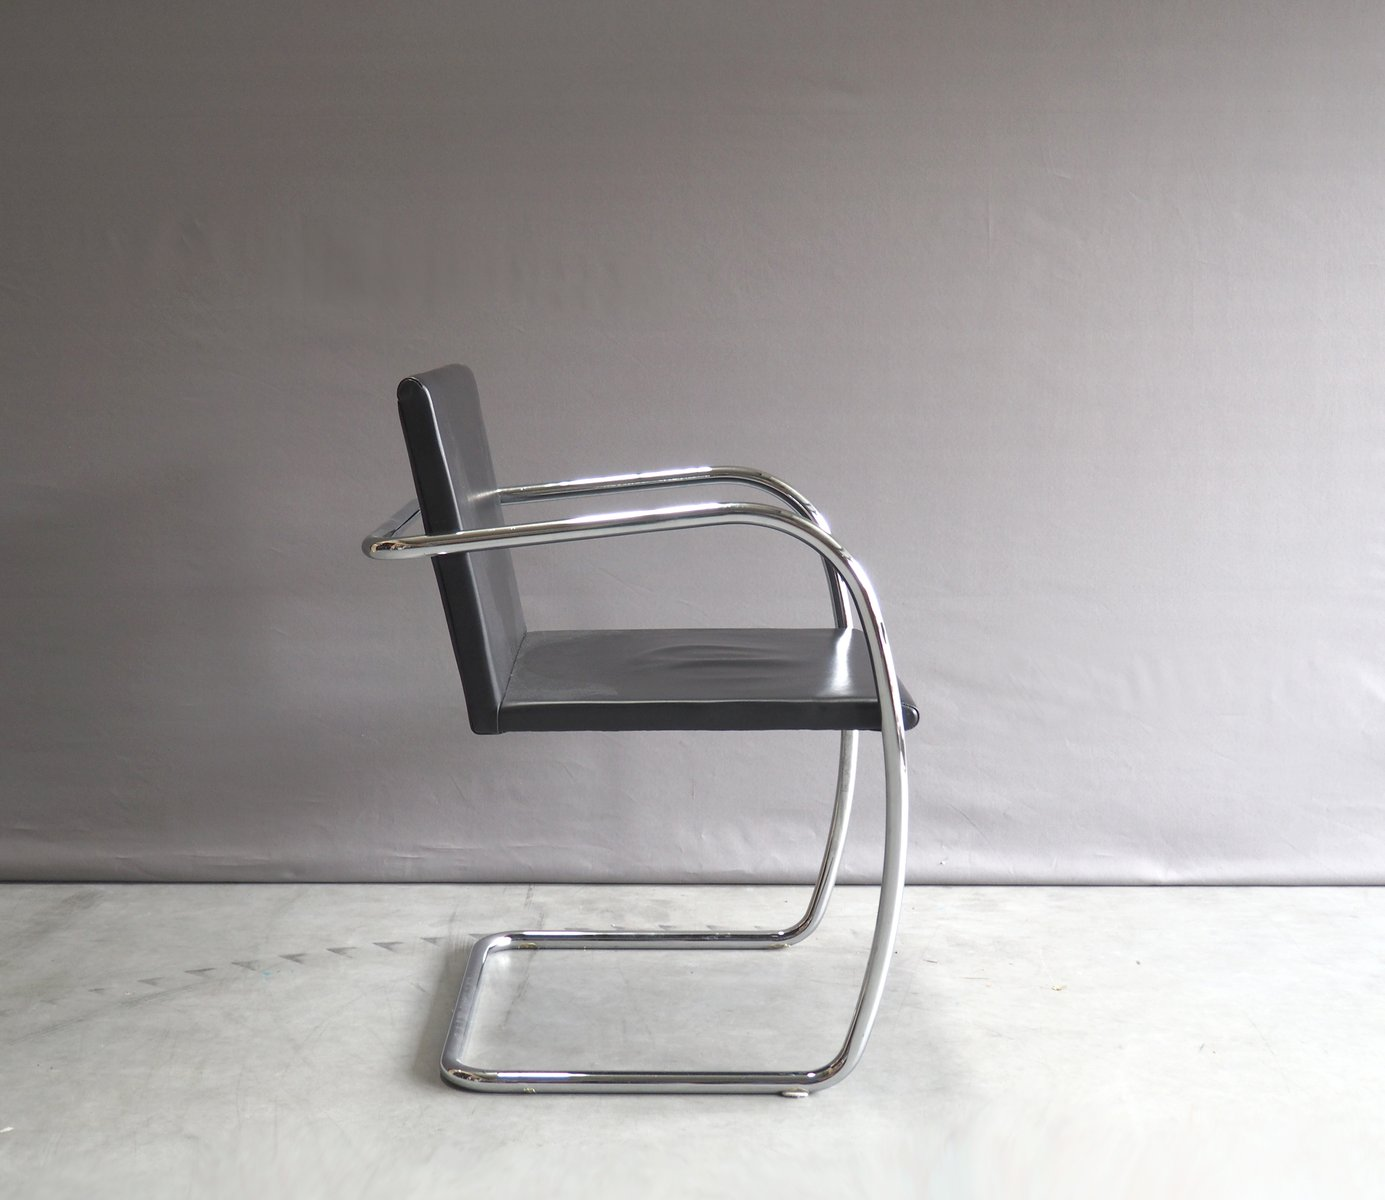 Chrome And Leather Brno Chair By Mies Van Der Rohe For Knoll, 1930s